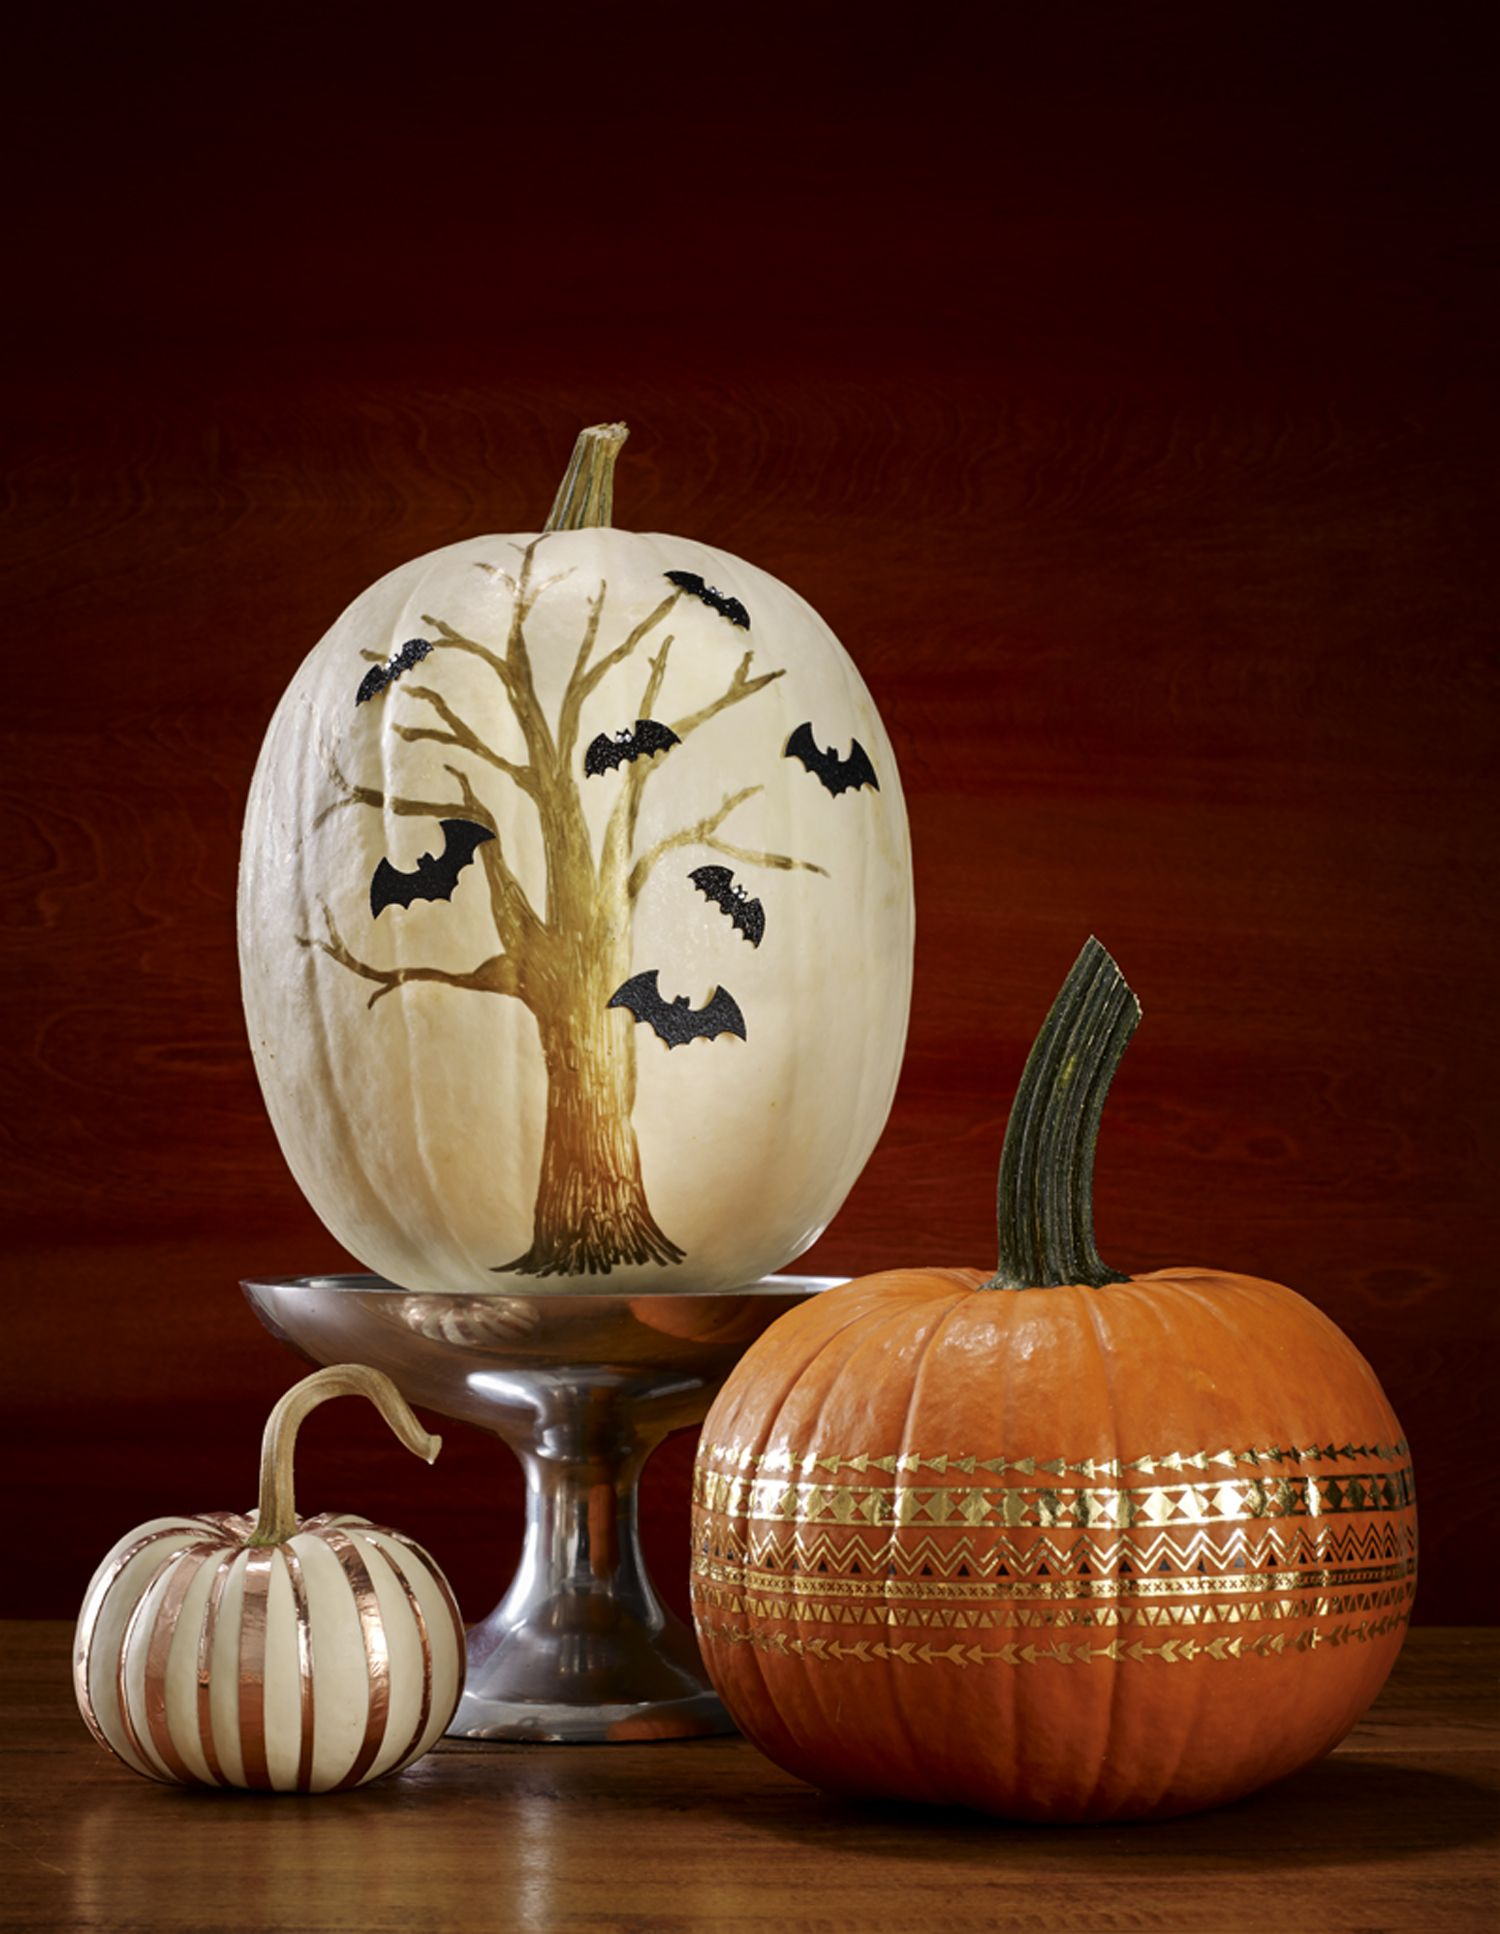 47 Pumpkin Painting Ideas , Cute Painted Pumpkin Ideas